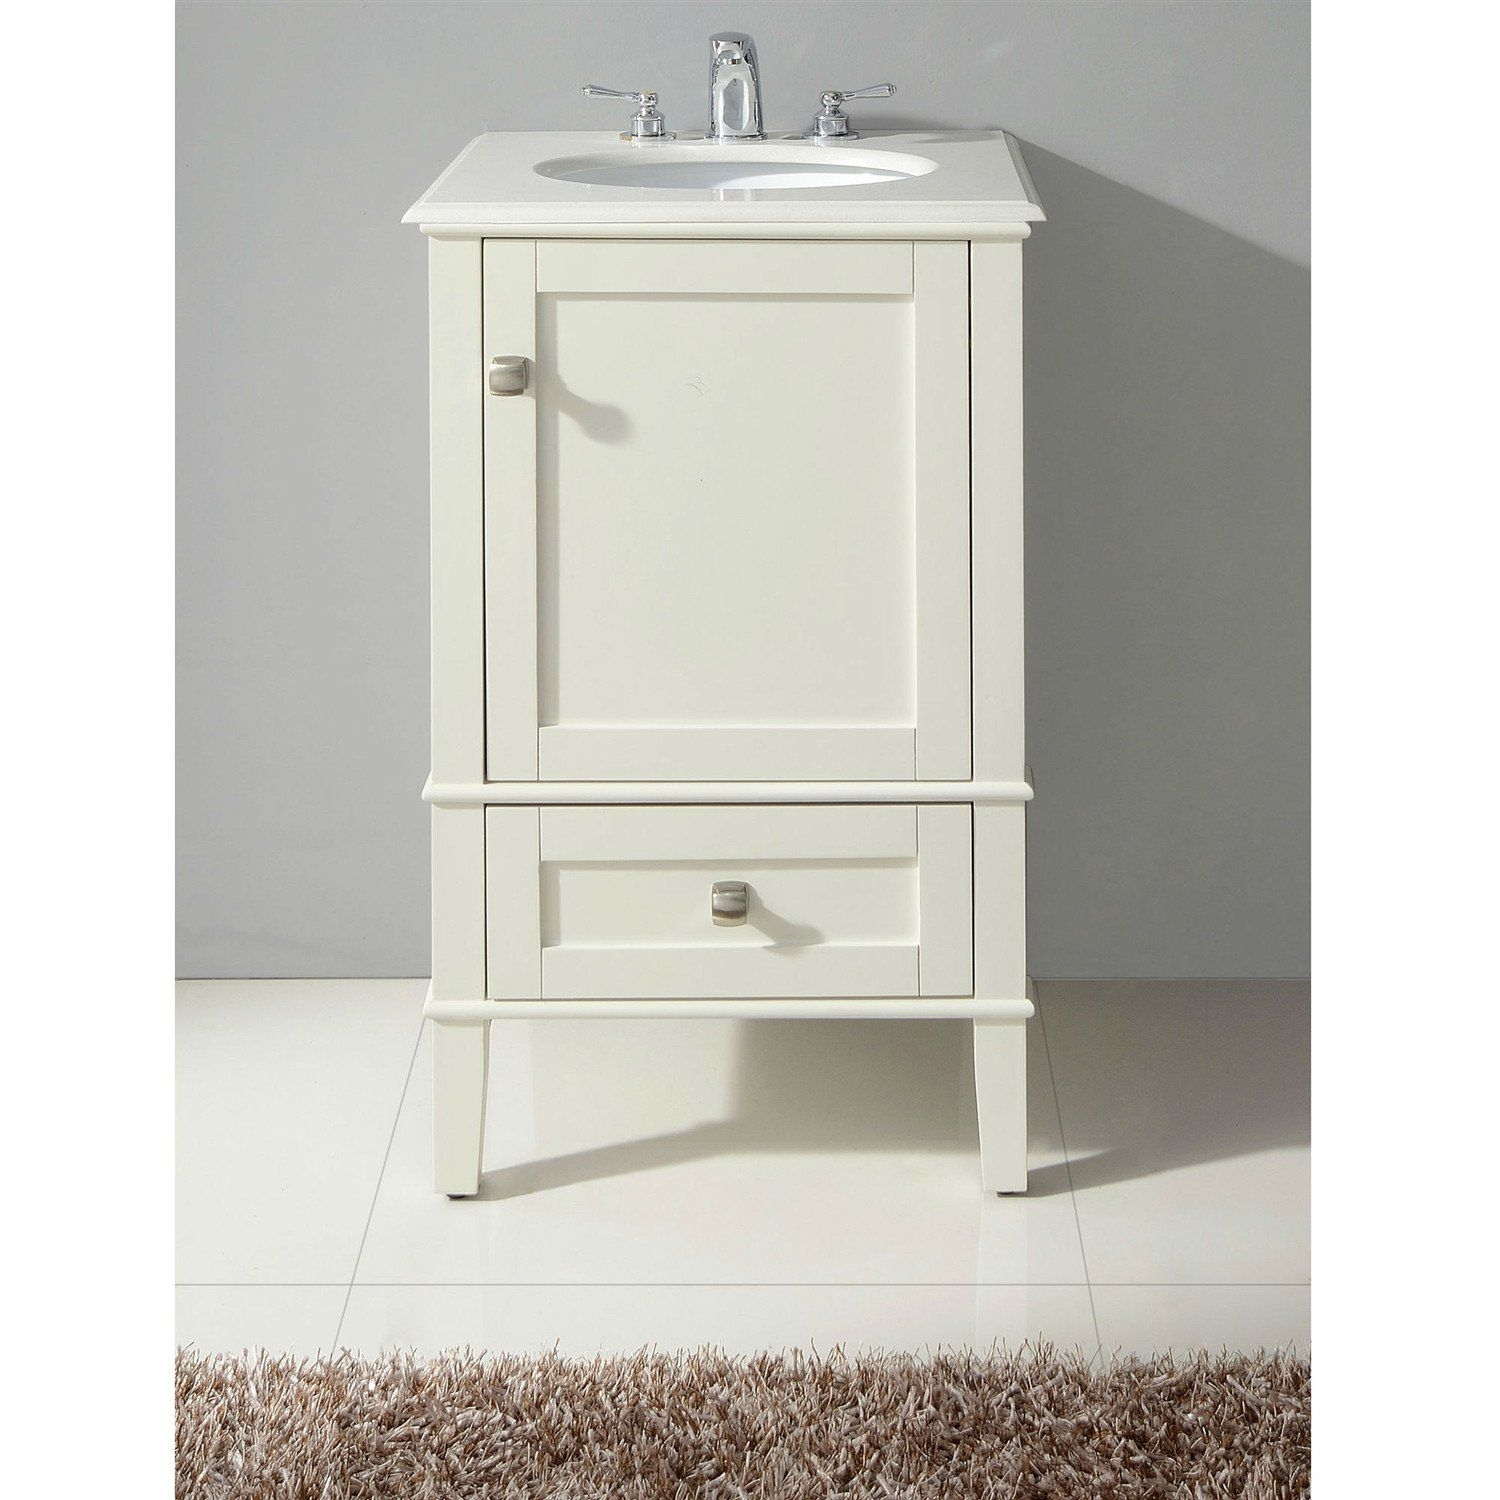 This 21 Inch Single Bathroom Vanity Set With Off White Marble Top